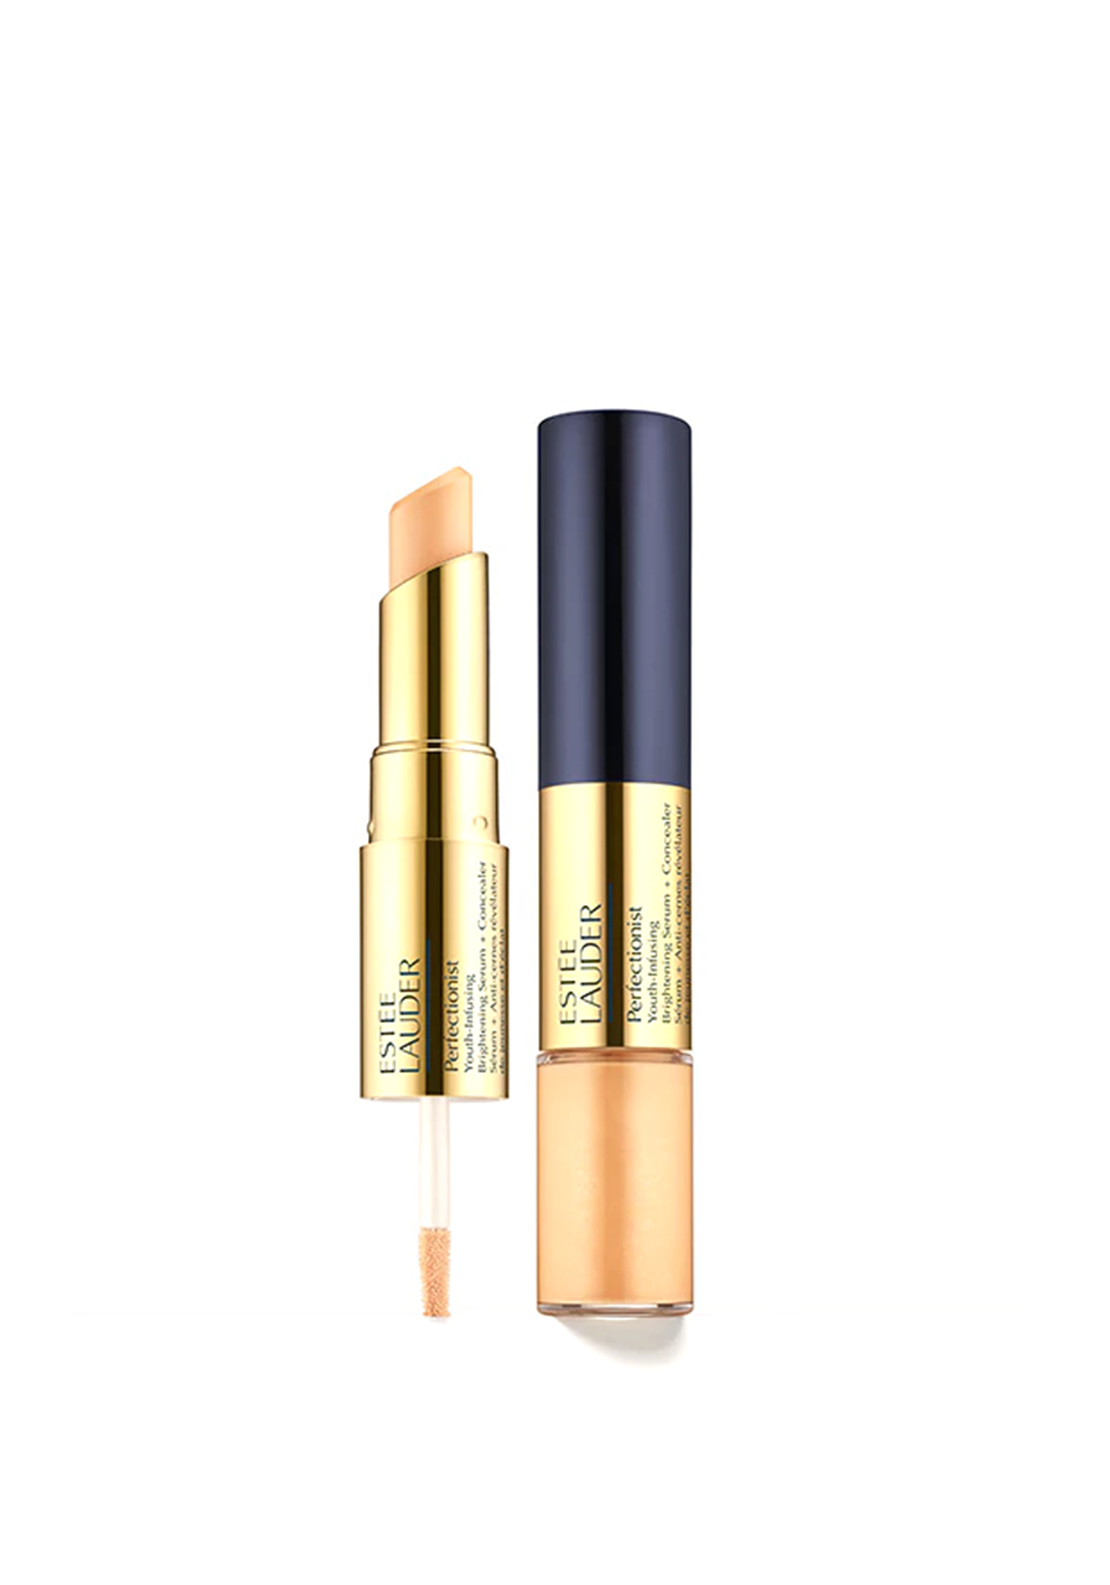 Estee Lauder Perfectionist Youth-Infusing Brightening Serum & Concealer, Light Cool